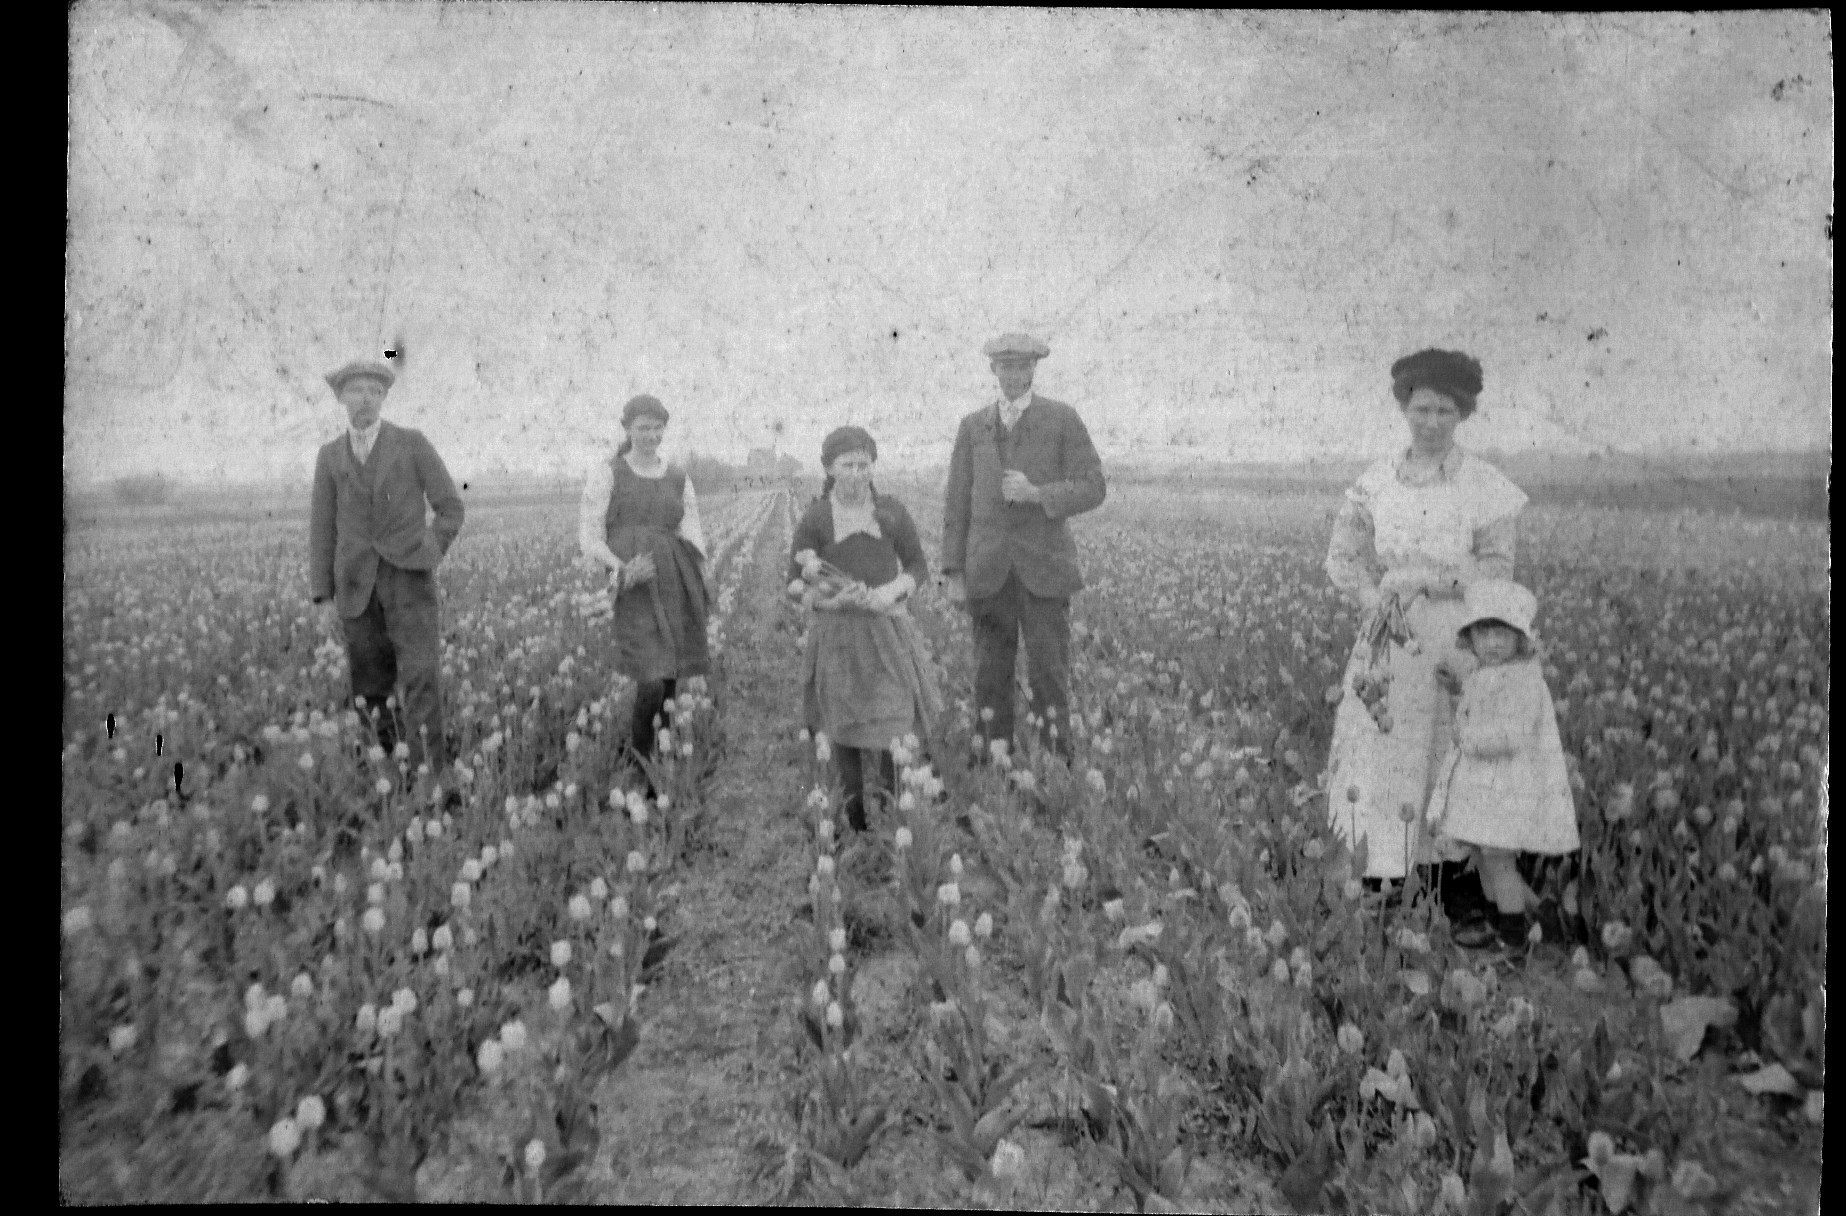 Tulip picking in Quadring about 1920